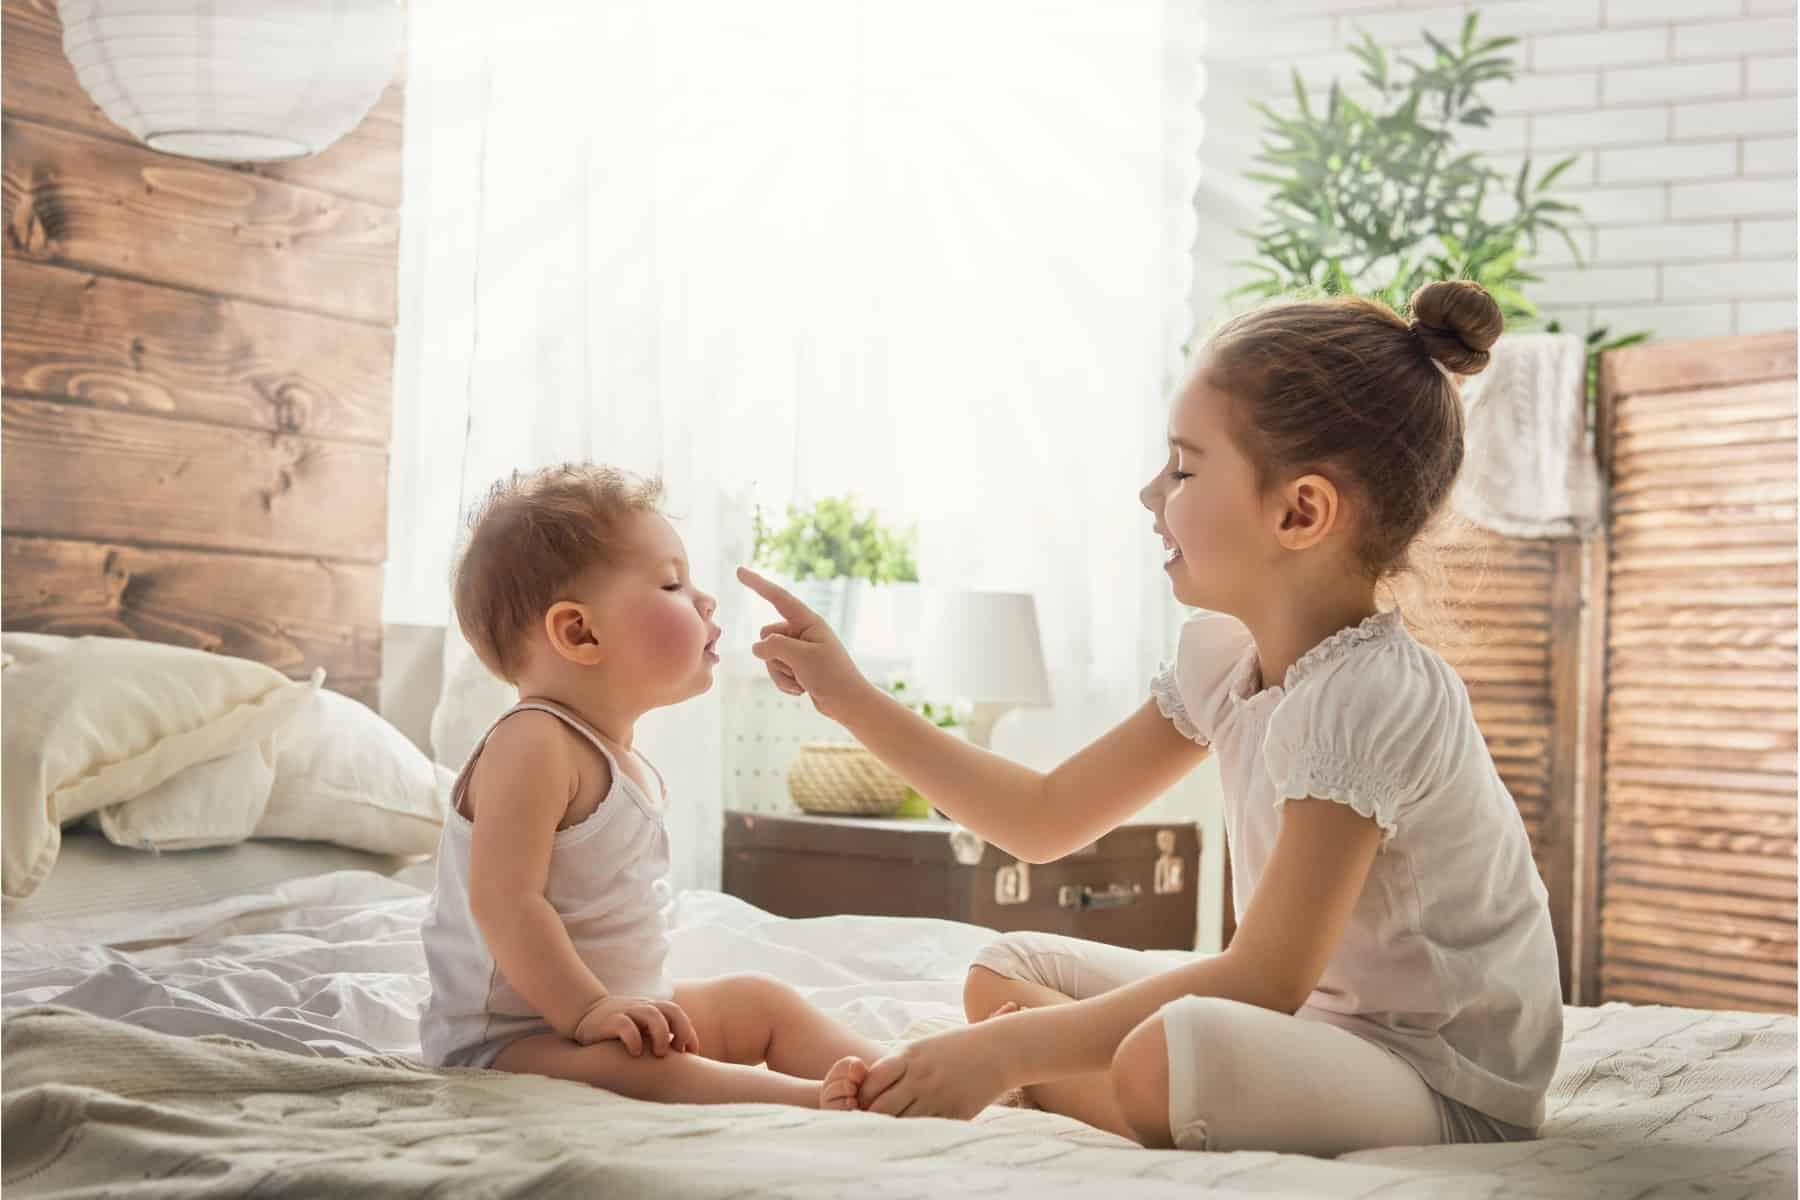 toddler and baby siblings playing together sitting